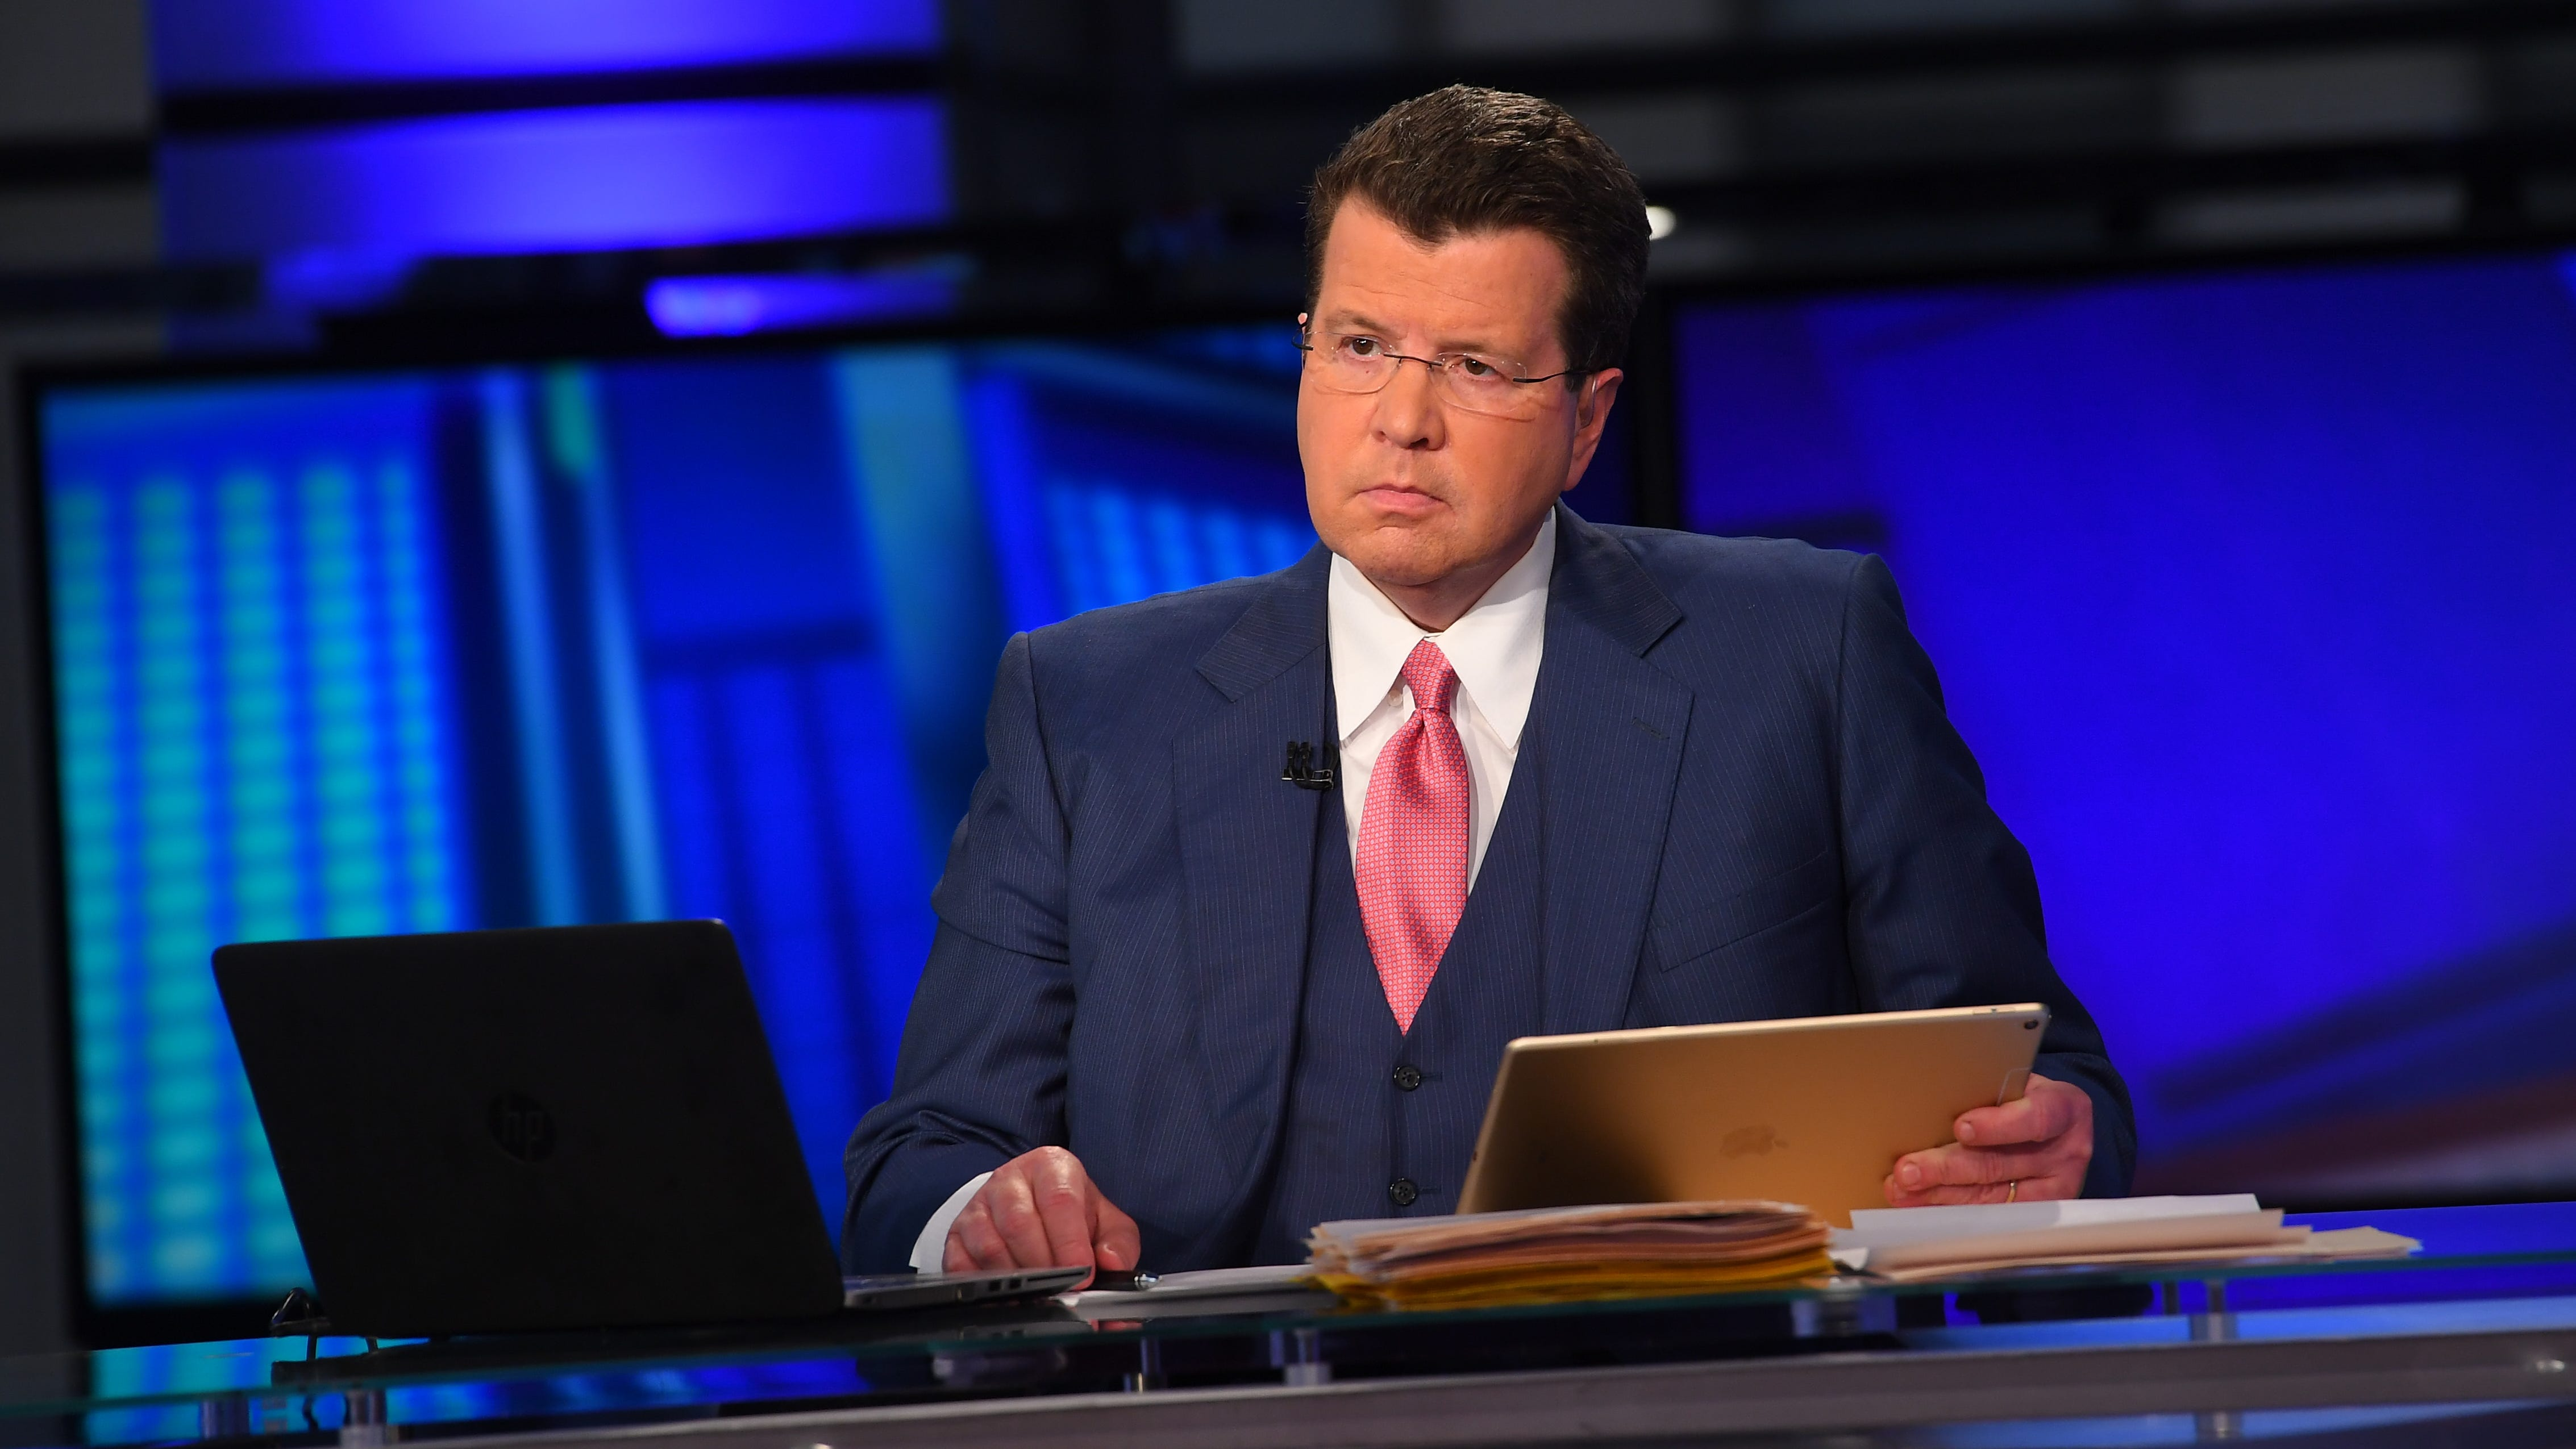 Fox News host urges vaccines after testing positive